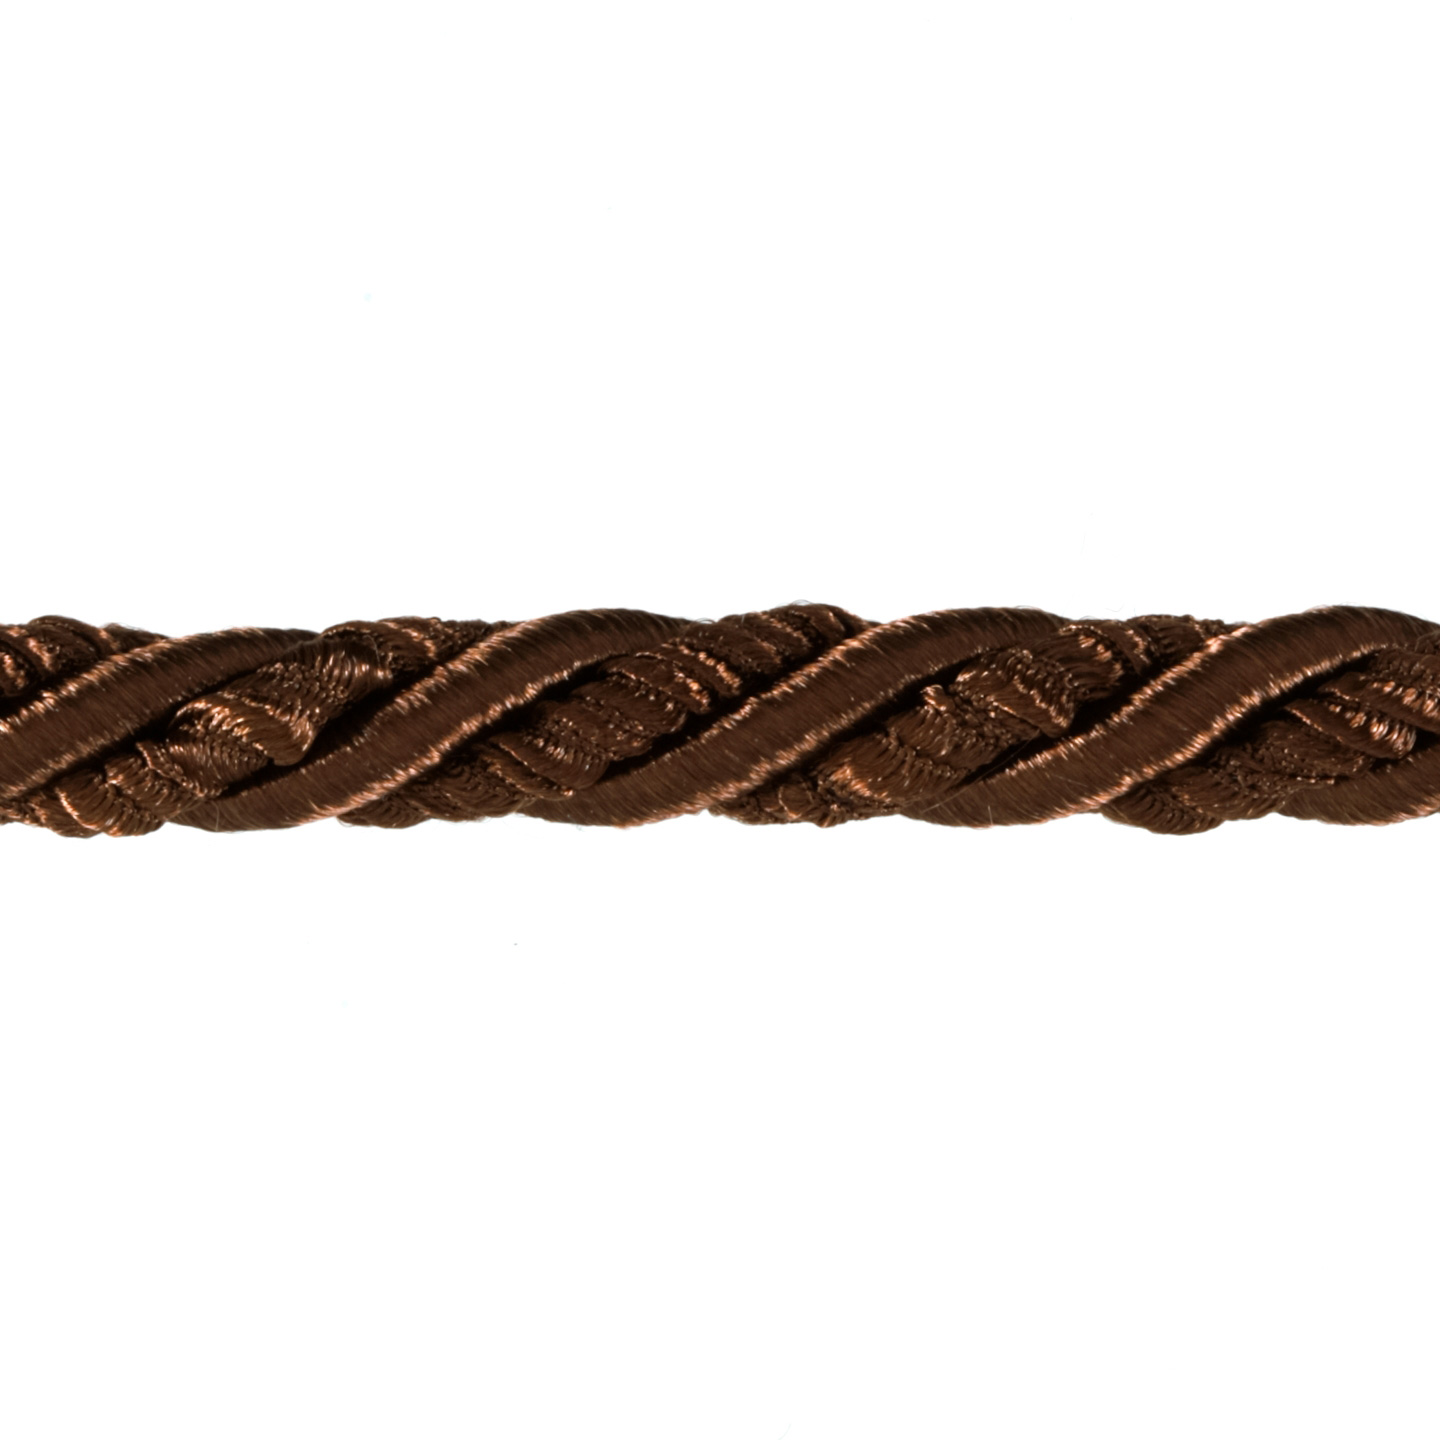 Shanae 3/8'' Twisted Cord Trim Chocolate Fabric